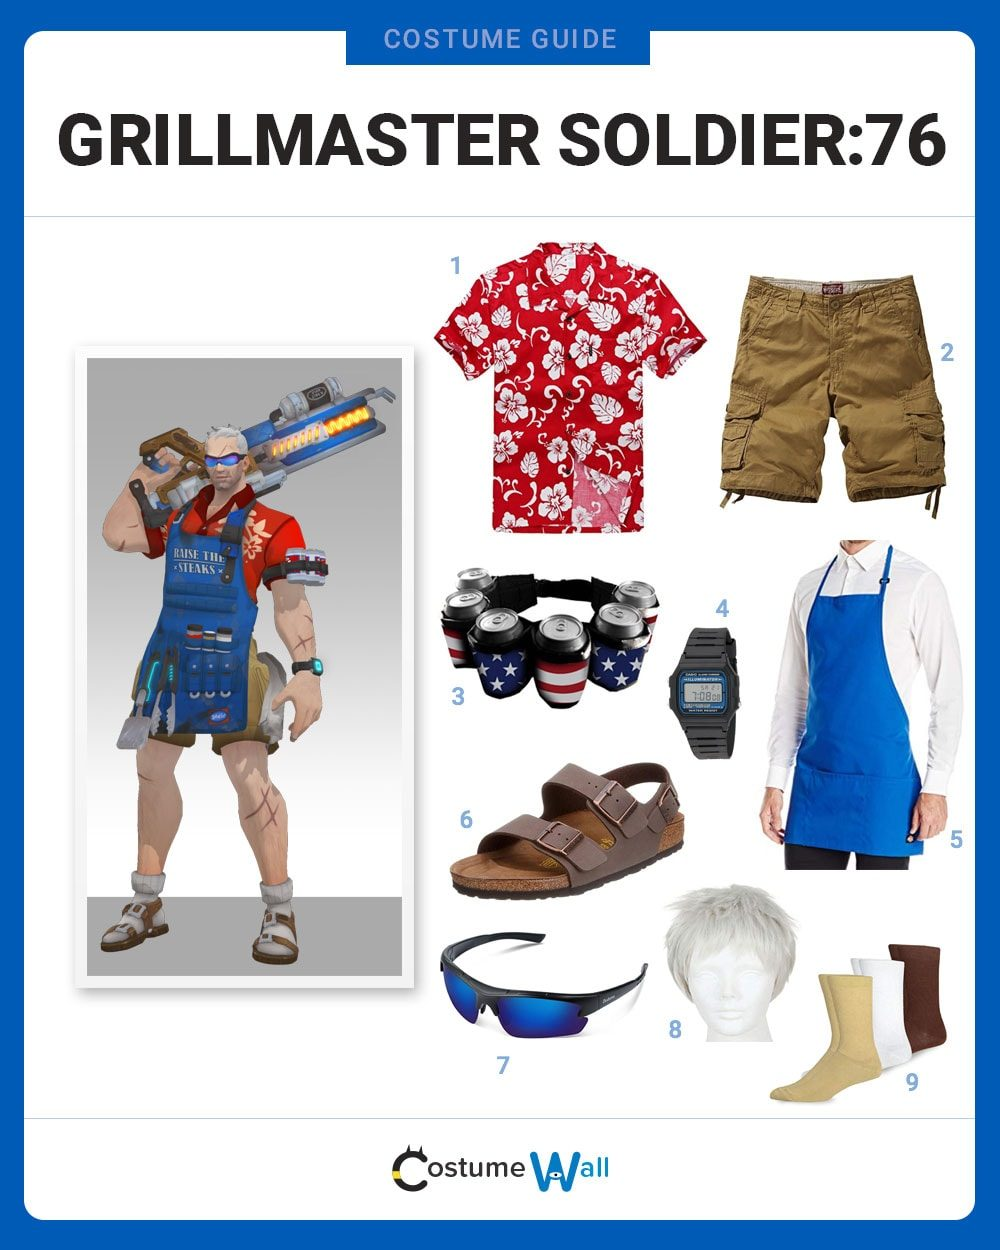 Grillmaster Soldier:76 Costume Guide